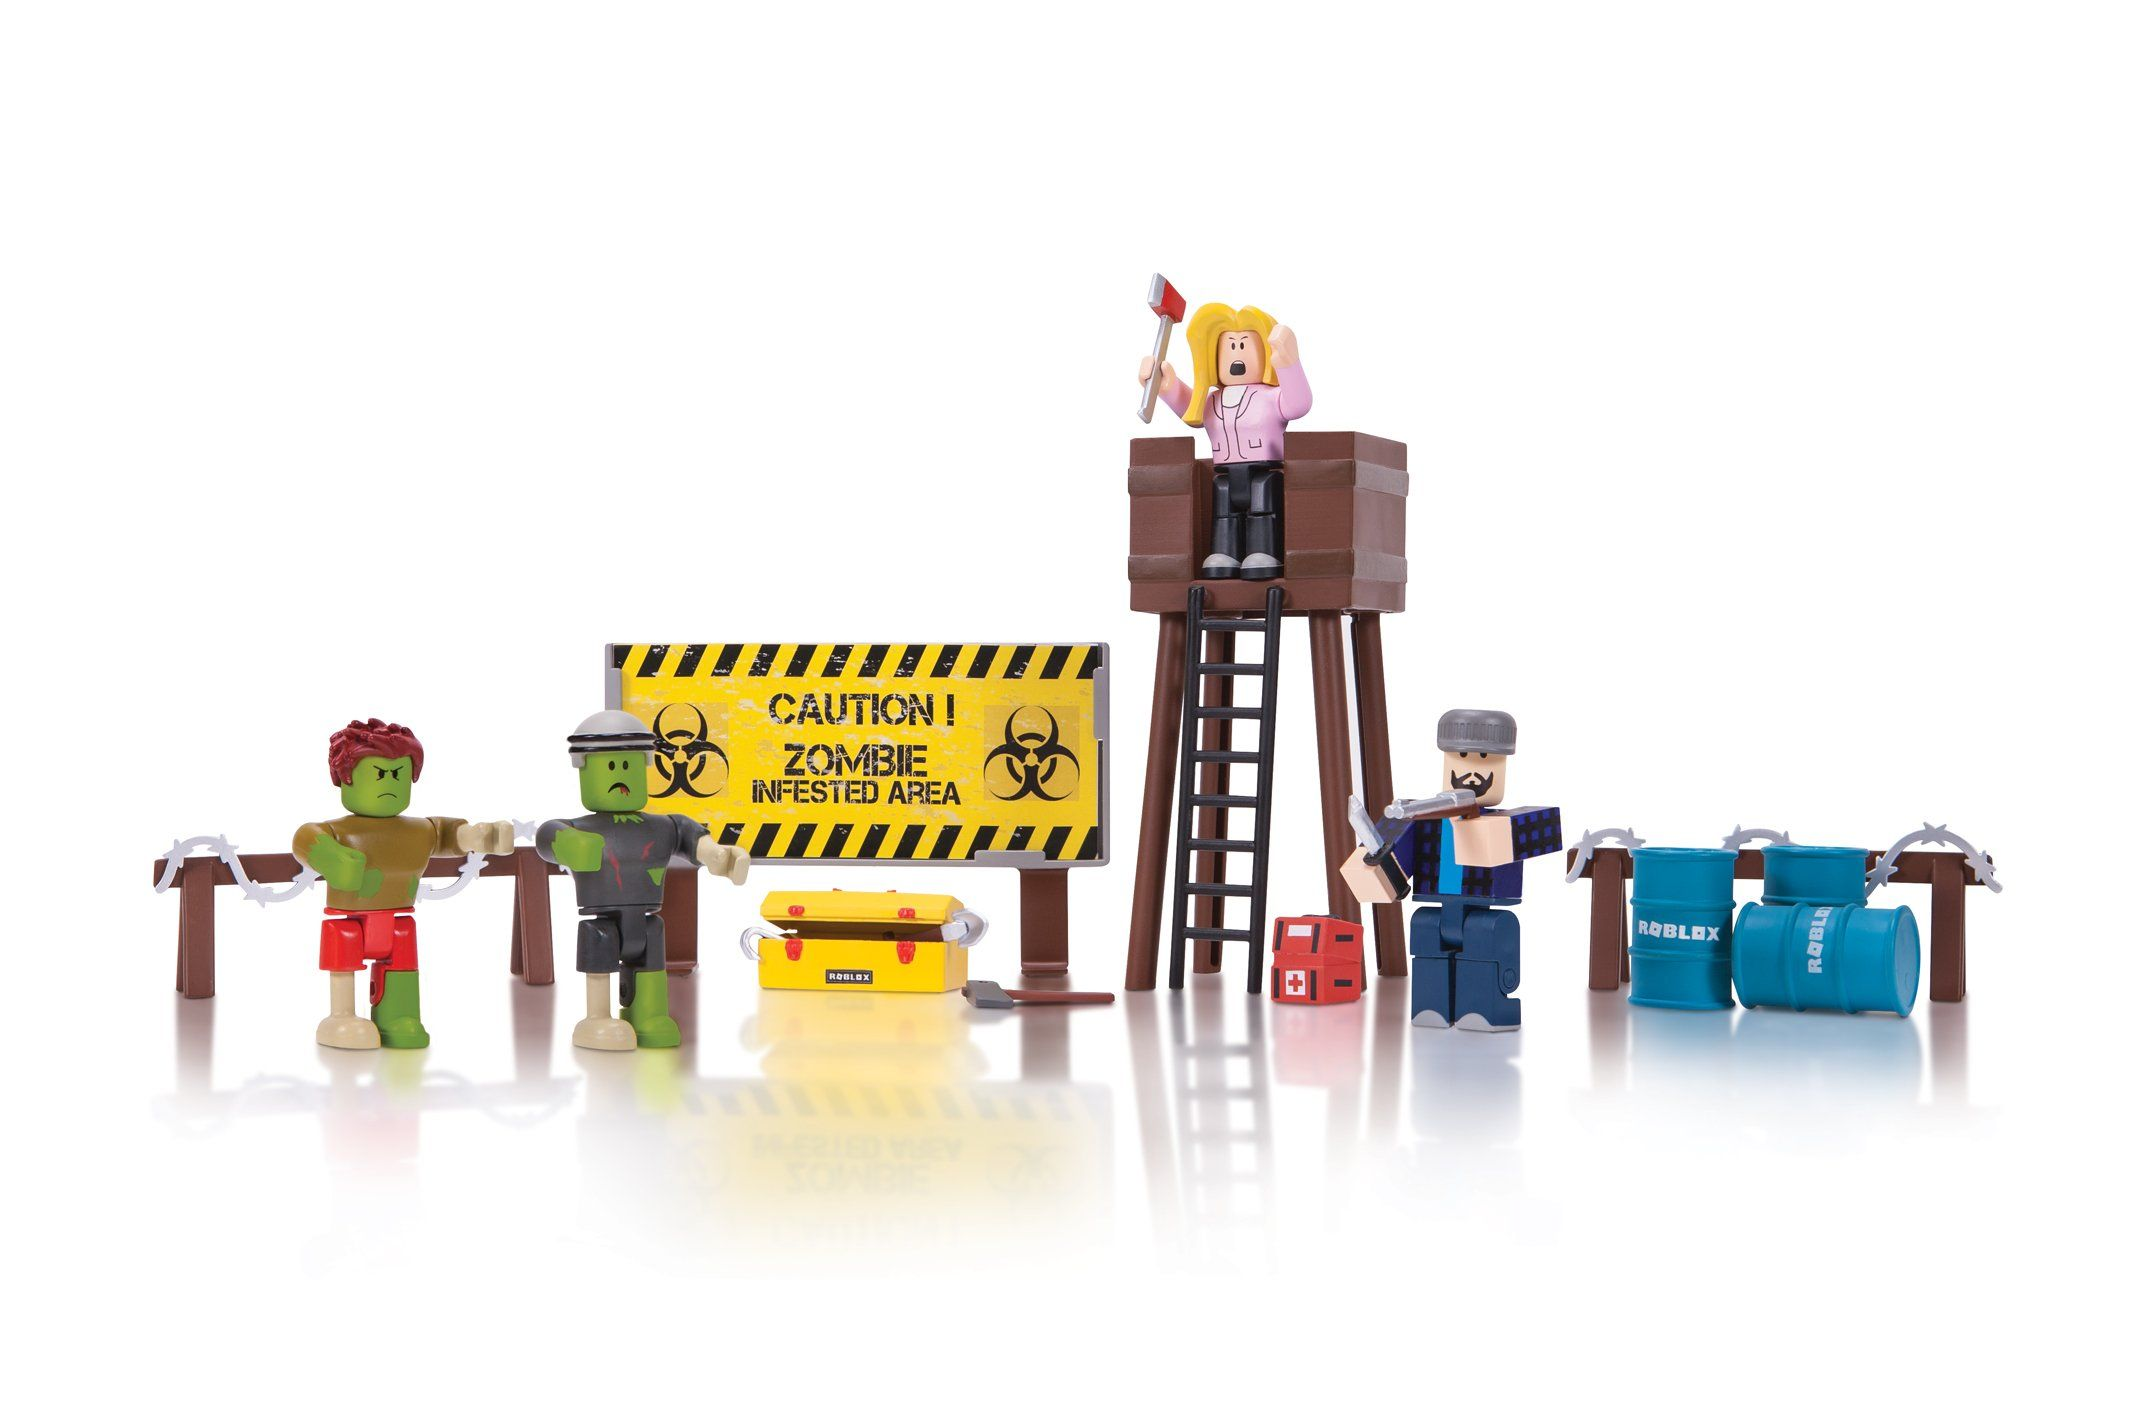 Roblox Zombie Attack Playset With Images Zombie Attack Roblox